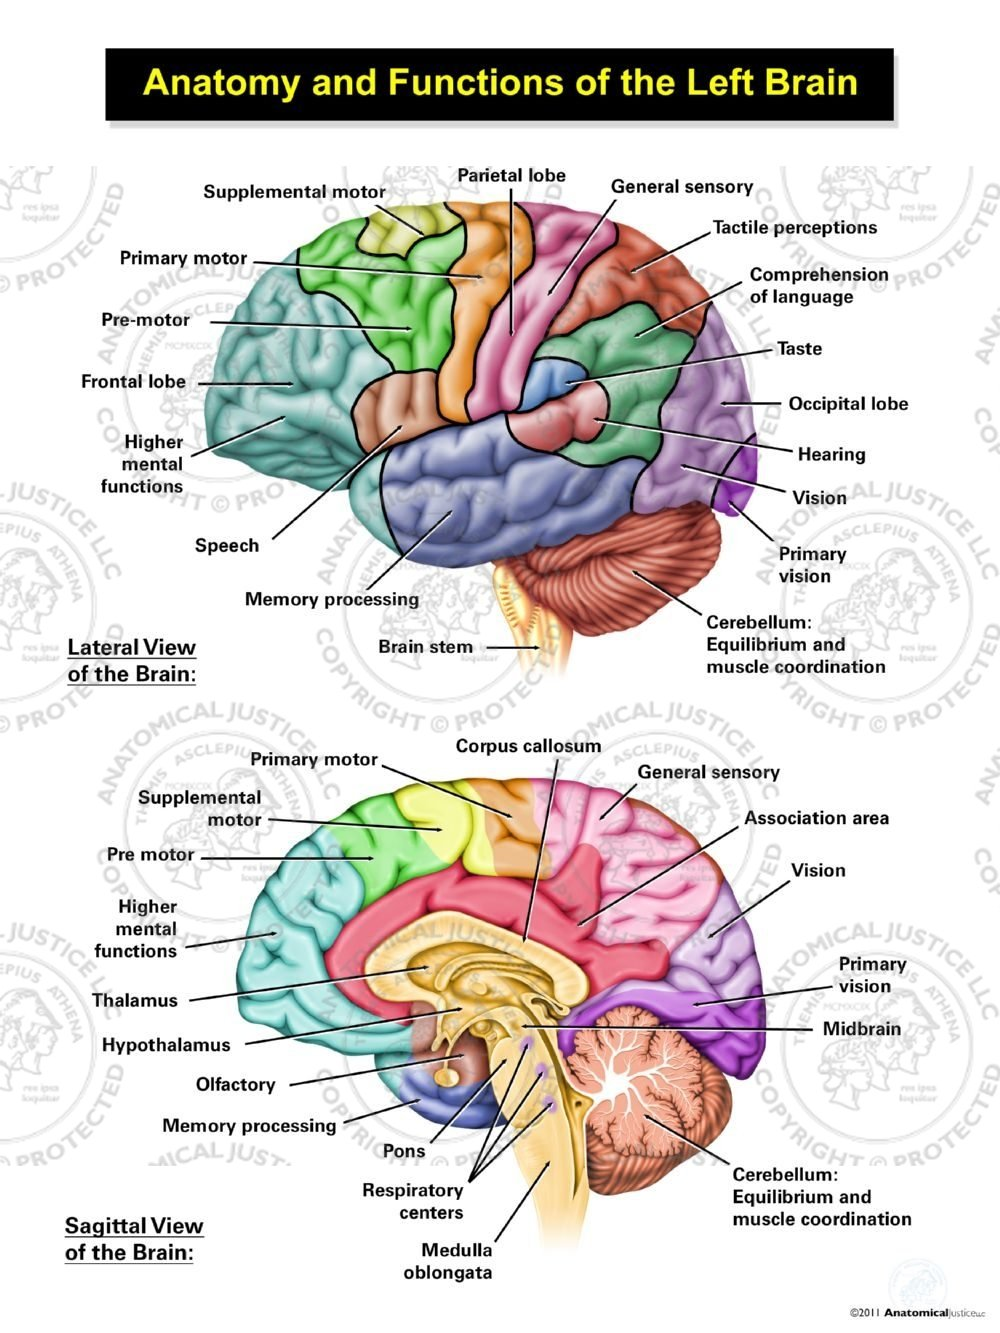 Anatomy And Functions Of The Left Brain Anatomical Justice